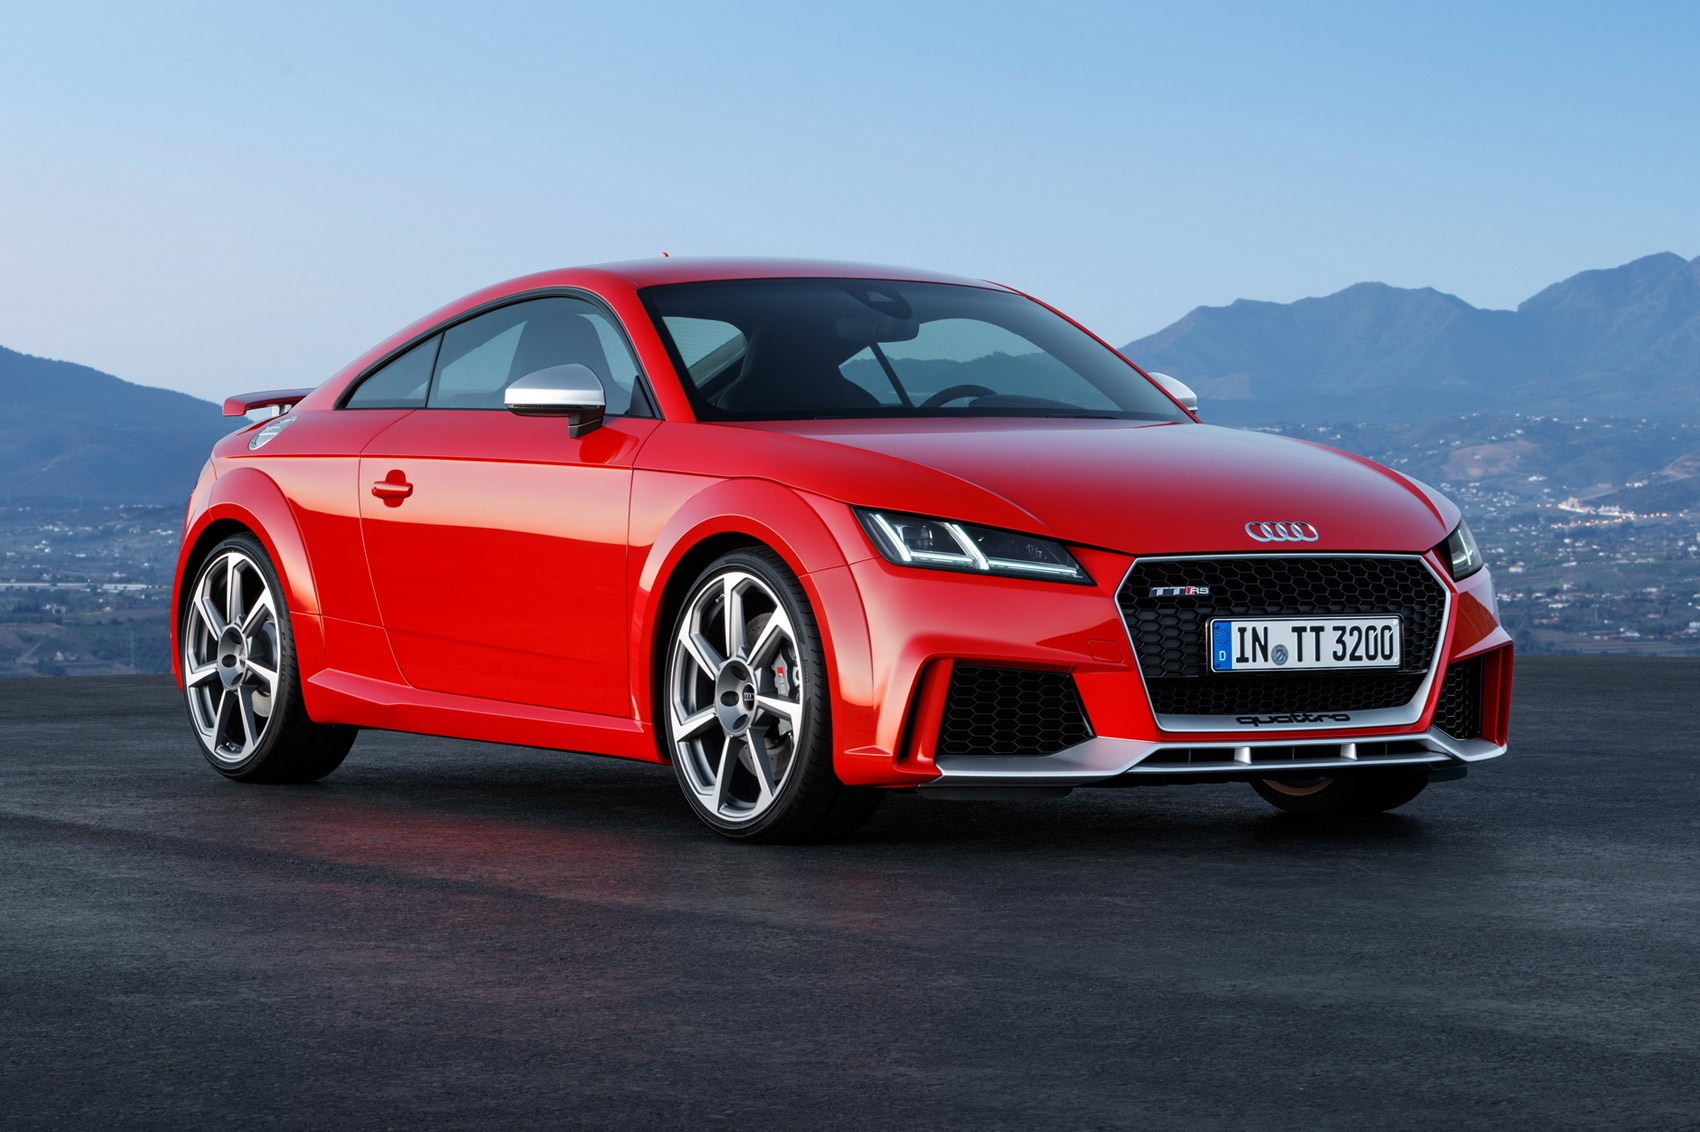 audi goes porsche hunting with new 395bhp tt rs coupe and roadster by car magazine. Black Bedroom Furniture Sets. Home Design Ideas